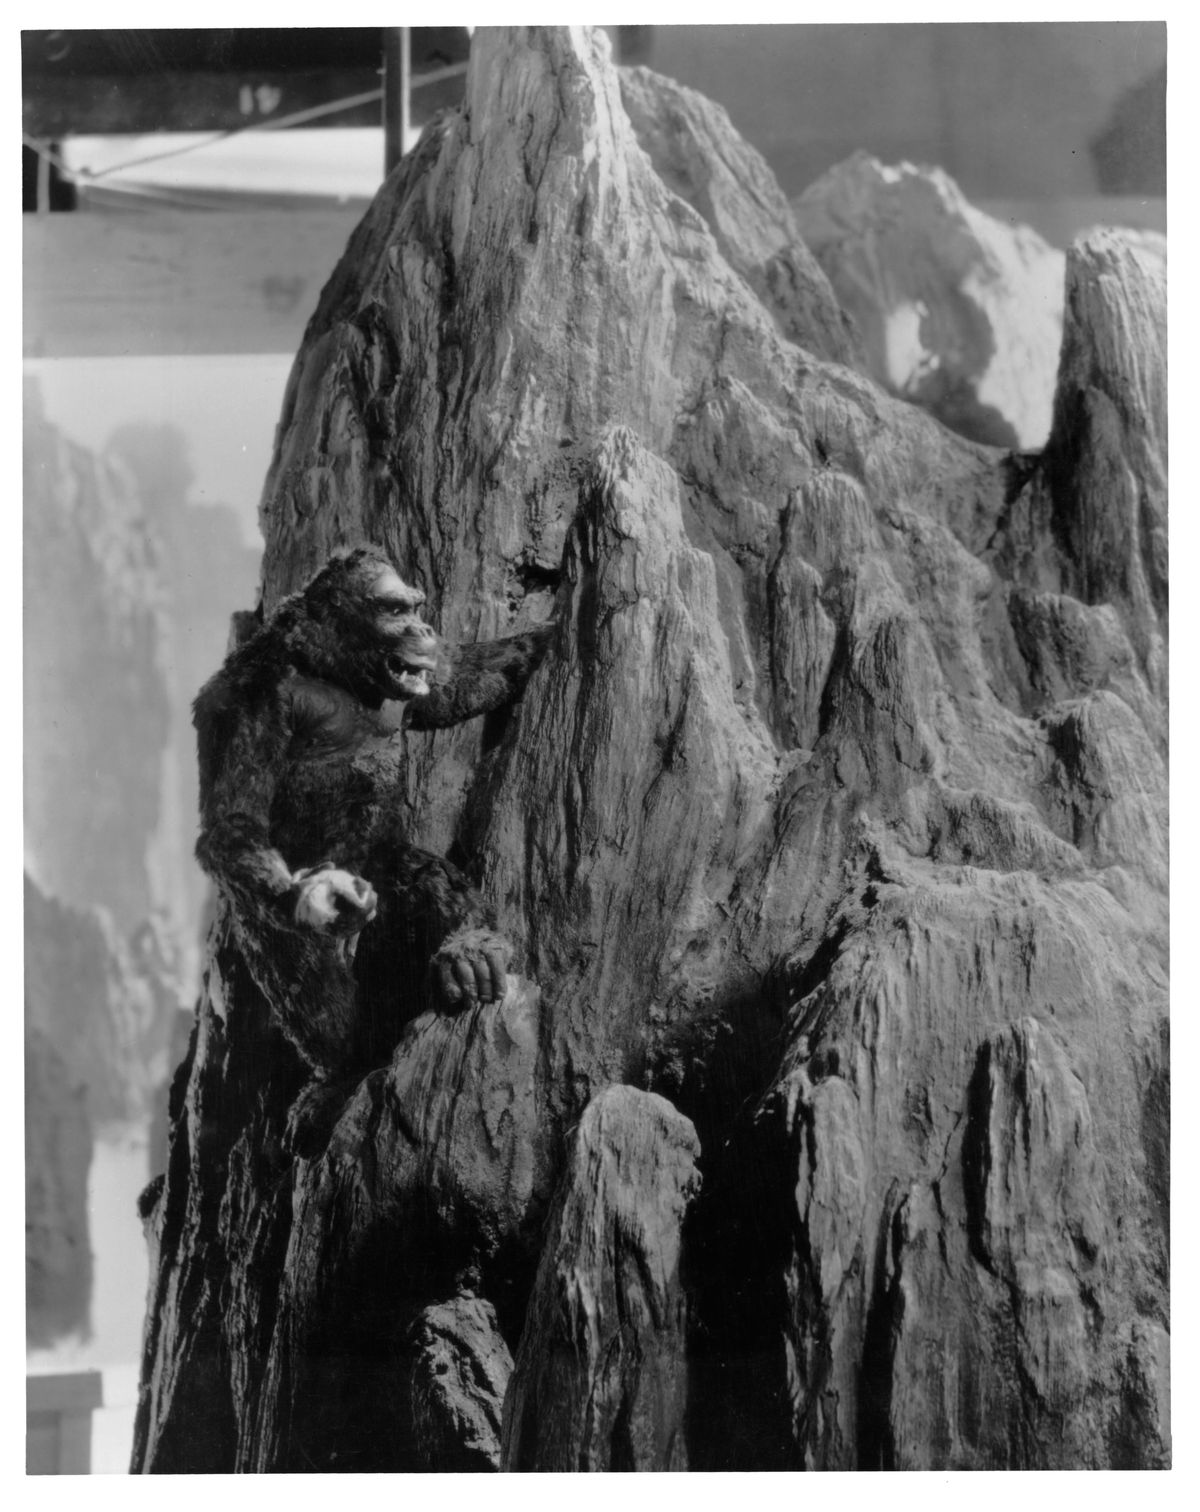 A black and white still image of a gorilla miniature climbing a psuedo rocky mountain.